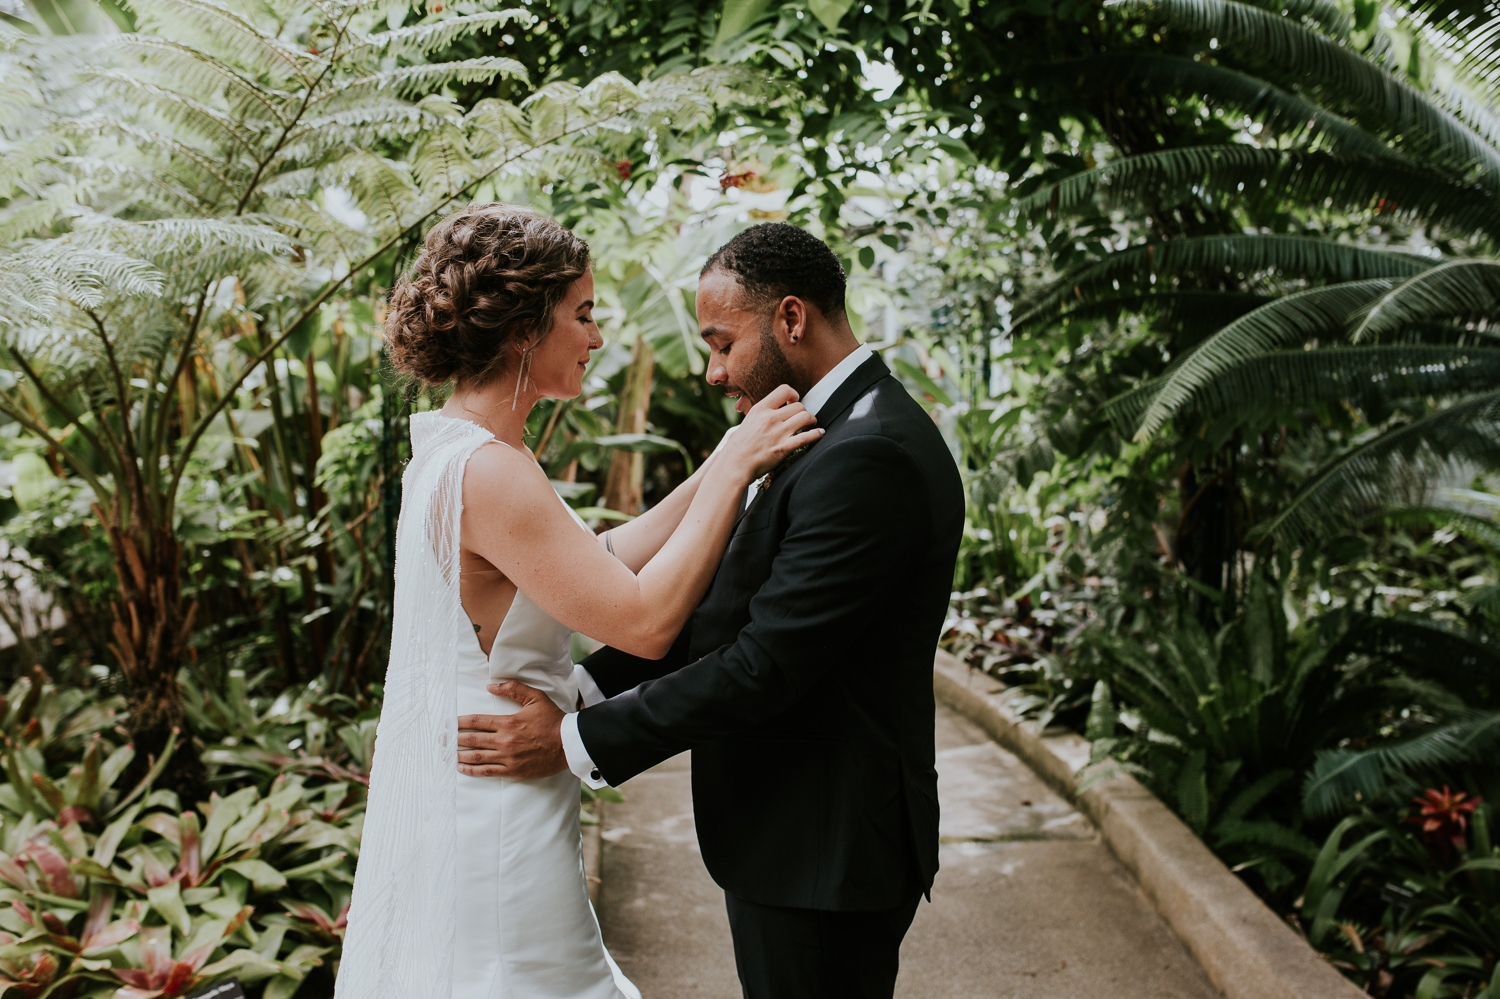 baltimore-maryland-rawlings-conservatory-wedding-portaits-photography 29.jpg